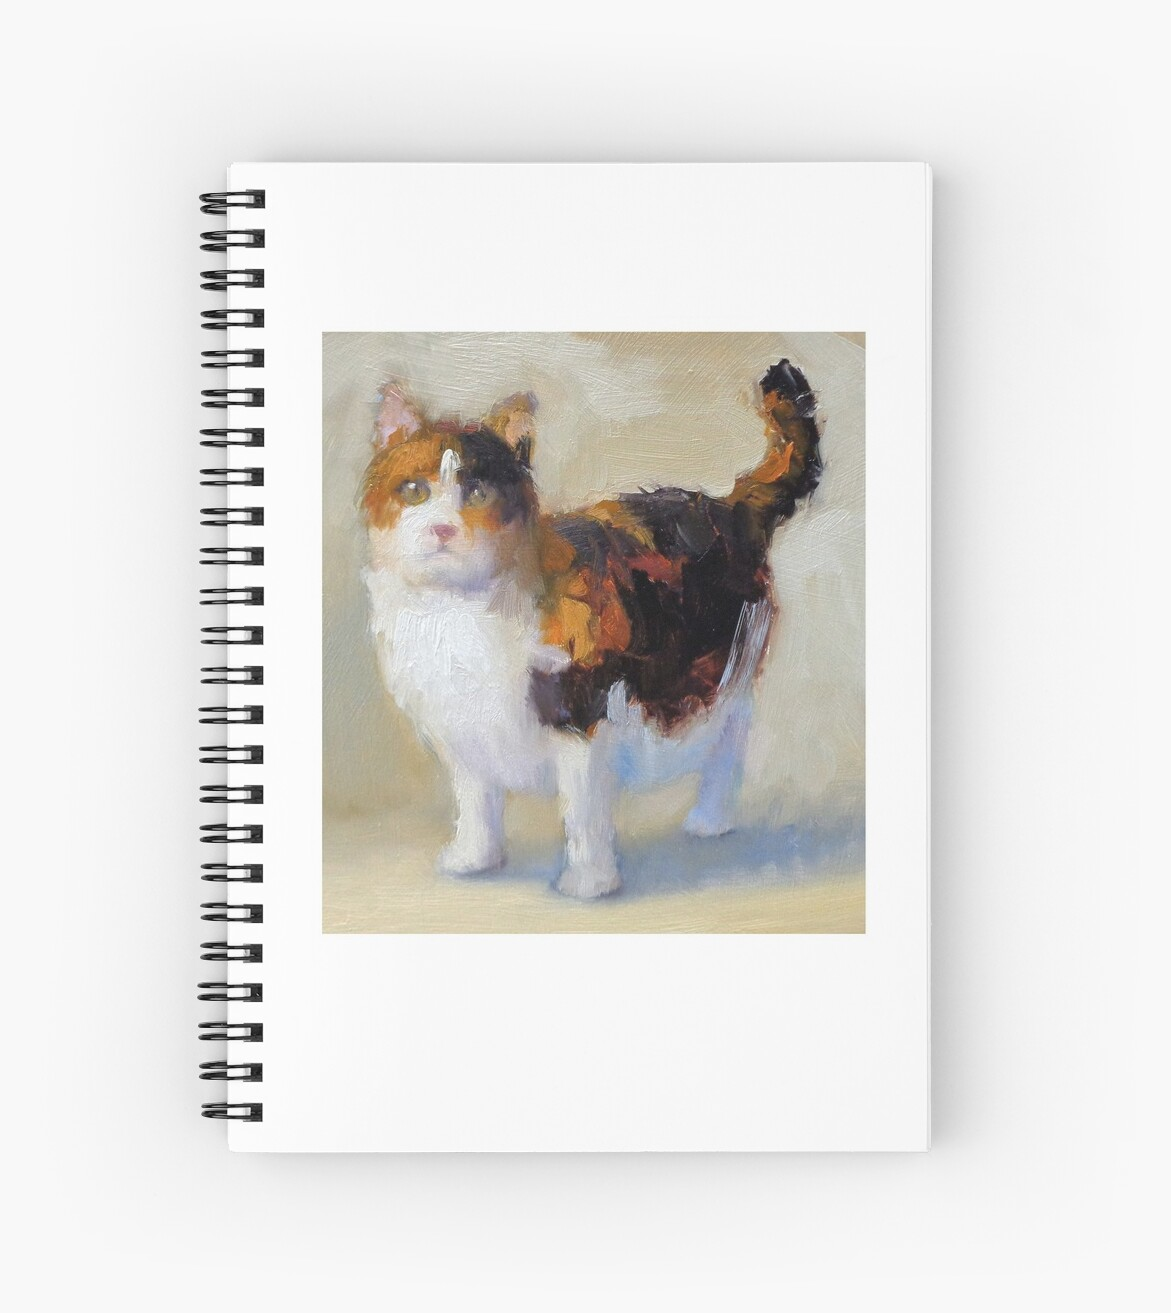 Sweet Calico by Gail Weir